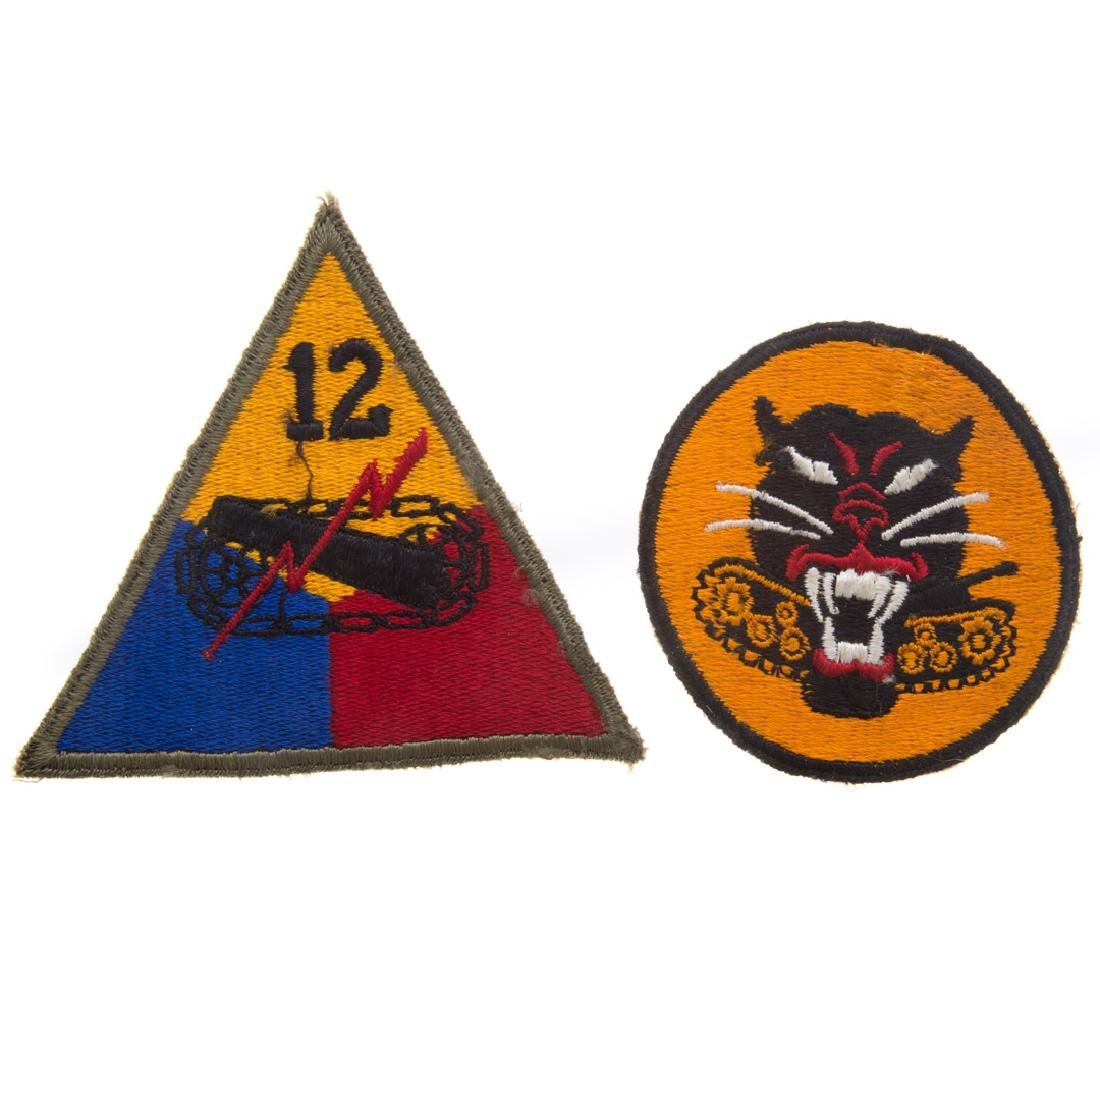 13 US Armored Div. & 1 Tank Destroyer patches - 2